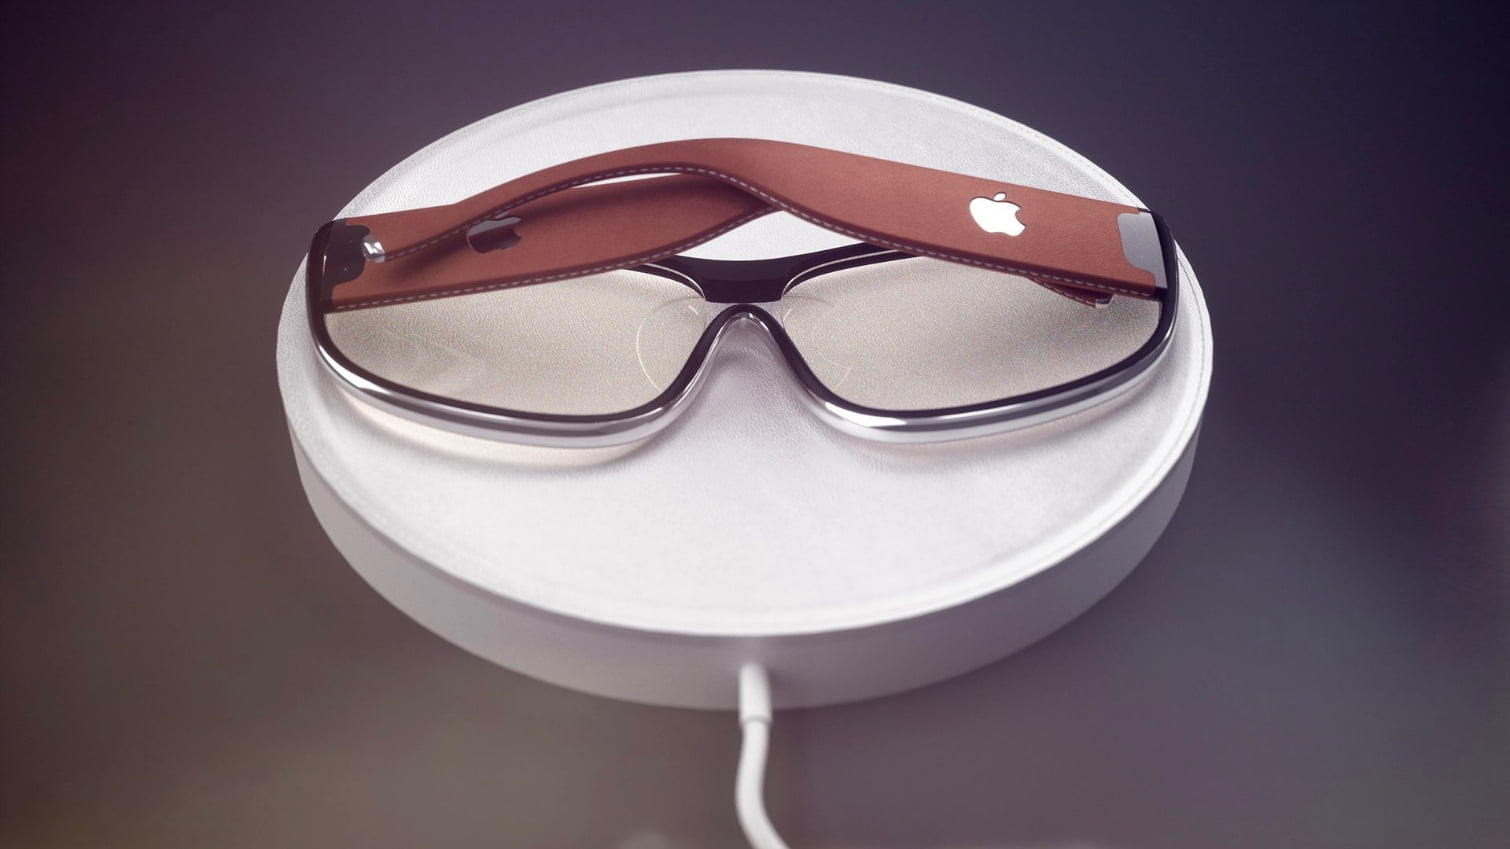 Apple could surprise us with Augmented Reality glasses this 2017